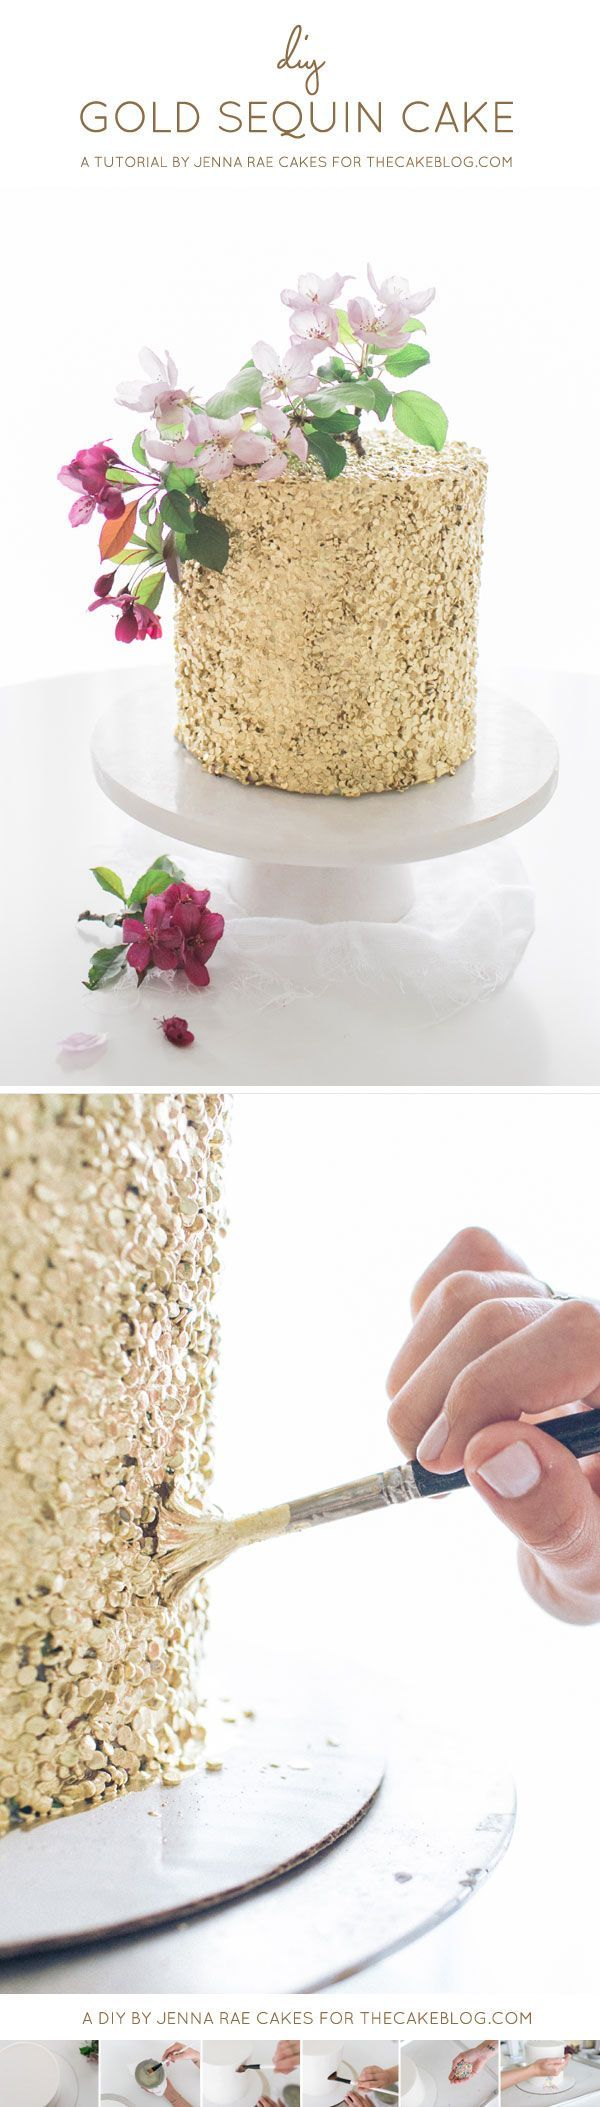 30 Gold Wedding Cake Ideas that Sweeten Your Big Day Sequin cake